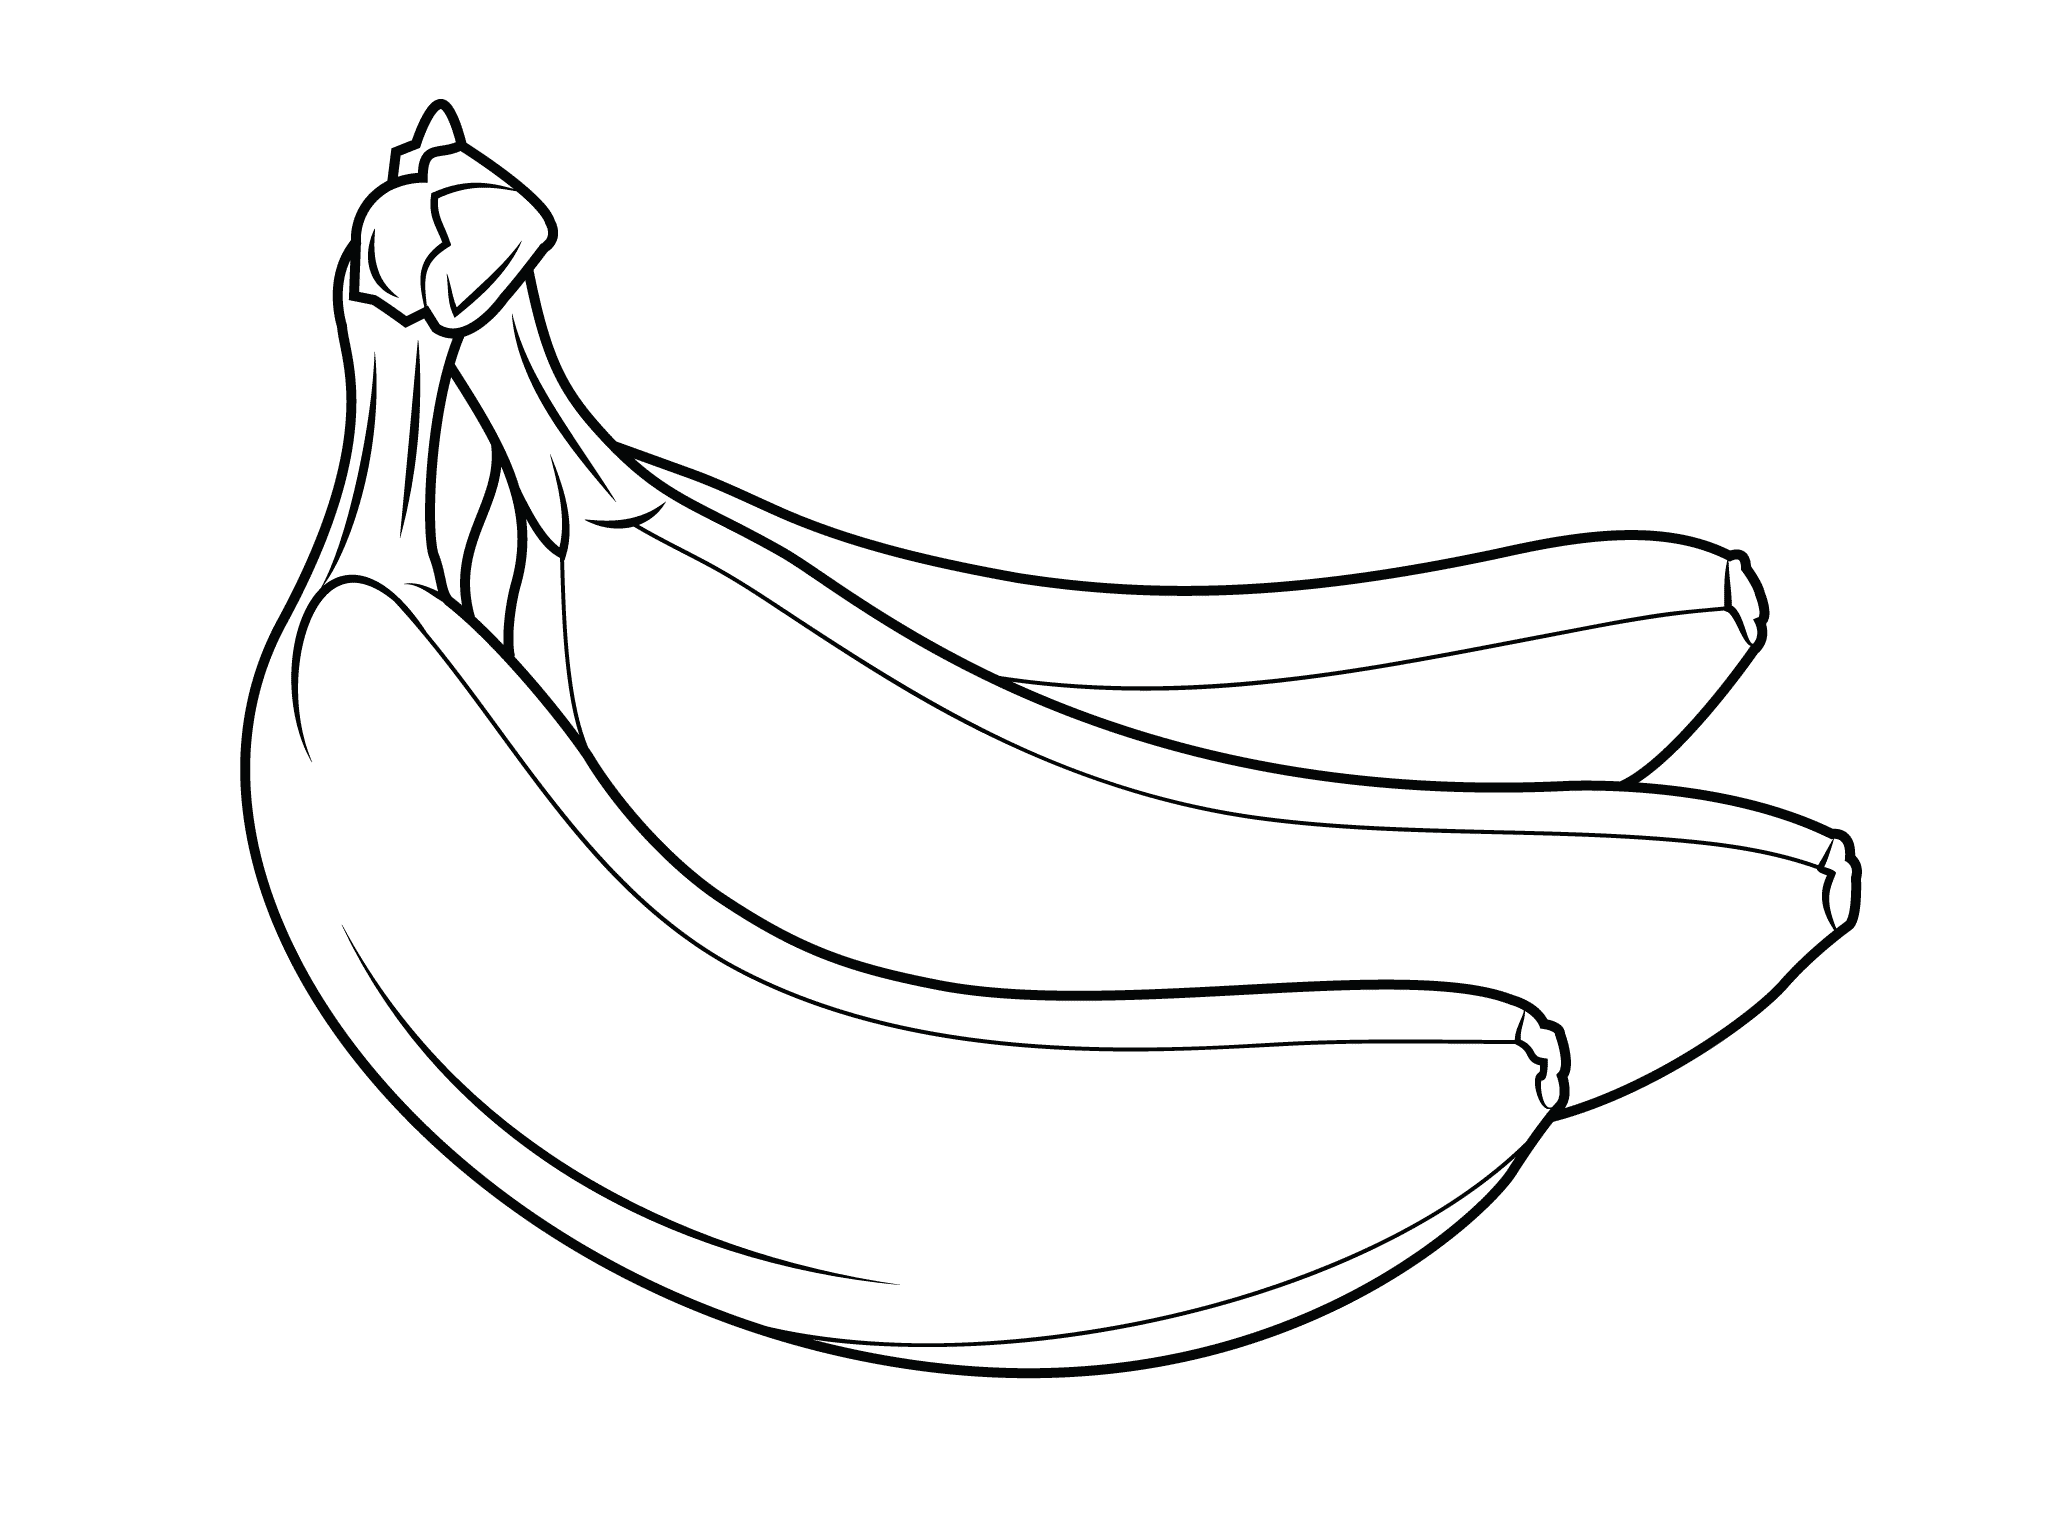 picture of banana for colouring bananas coloring pages picture for colouring of banana